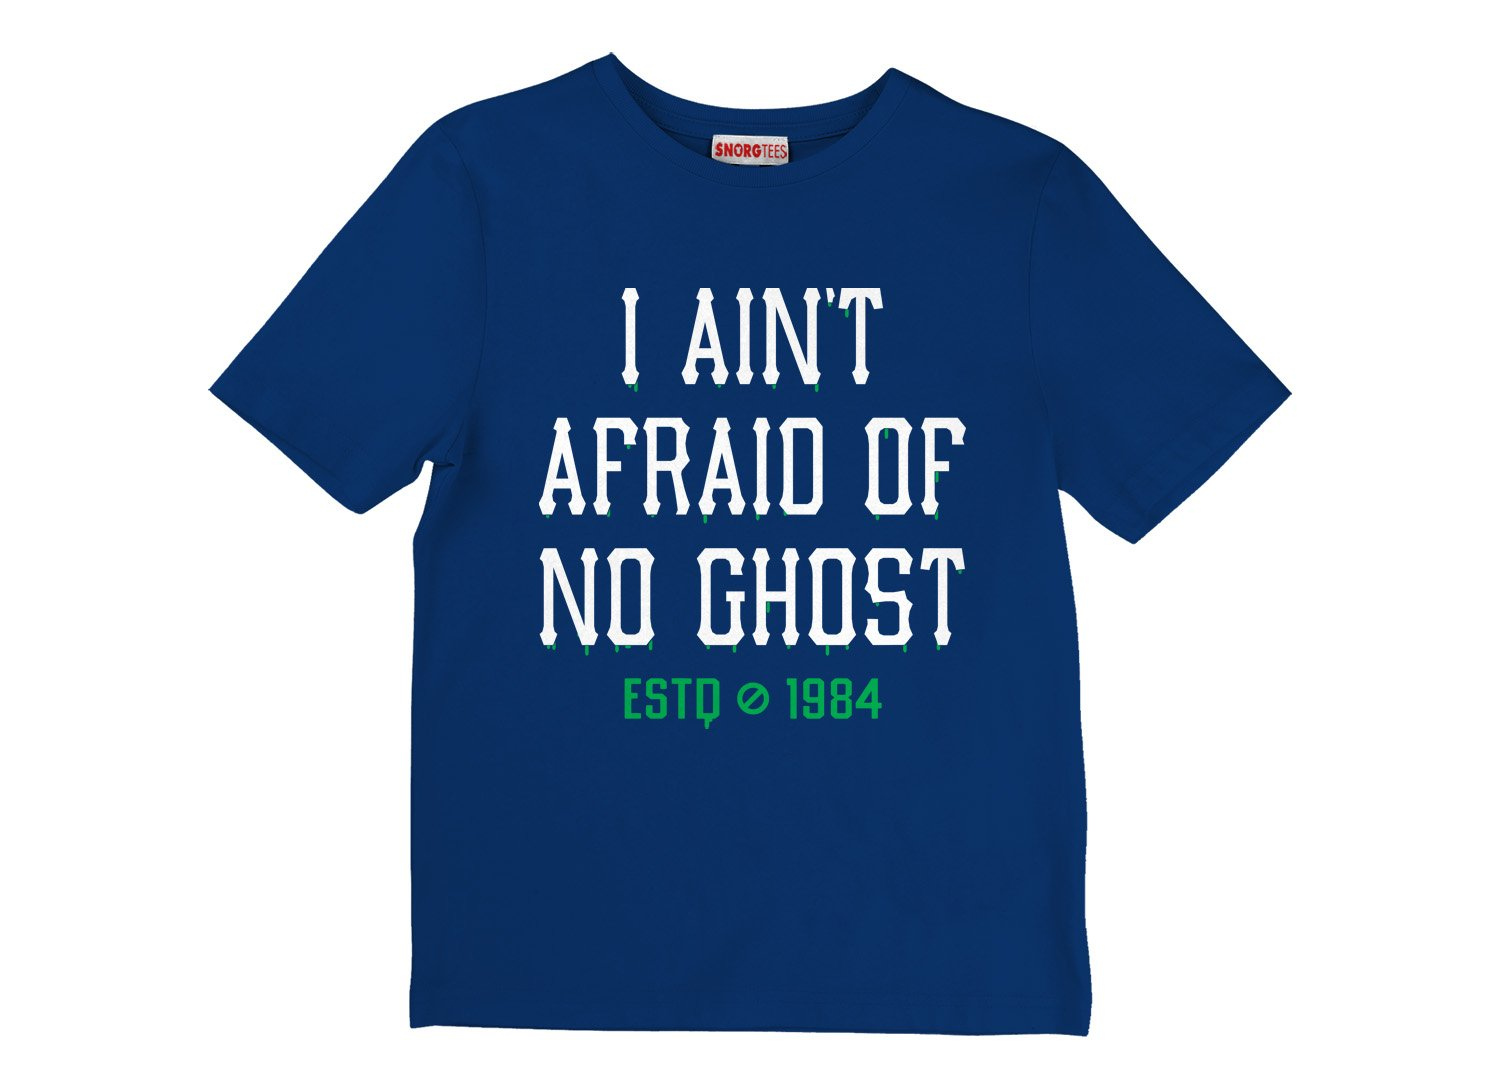 I Ain't Afraid Of No Ghost on Kids T-Shirt